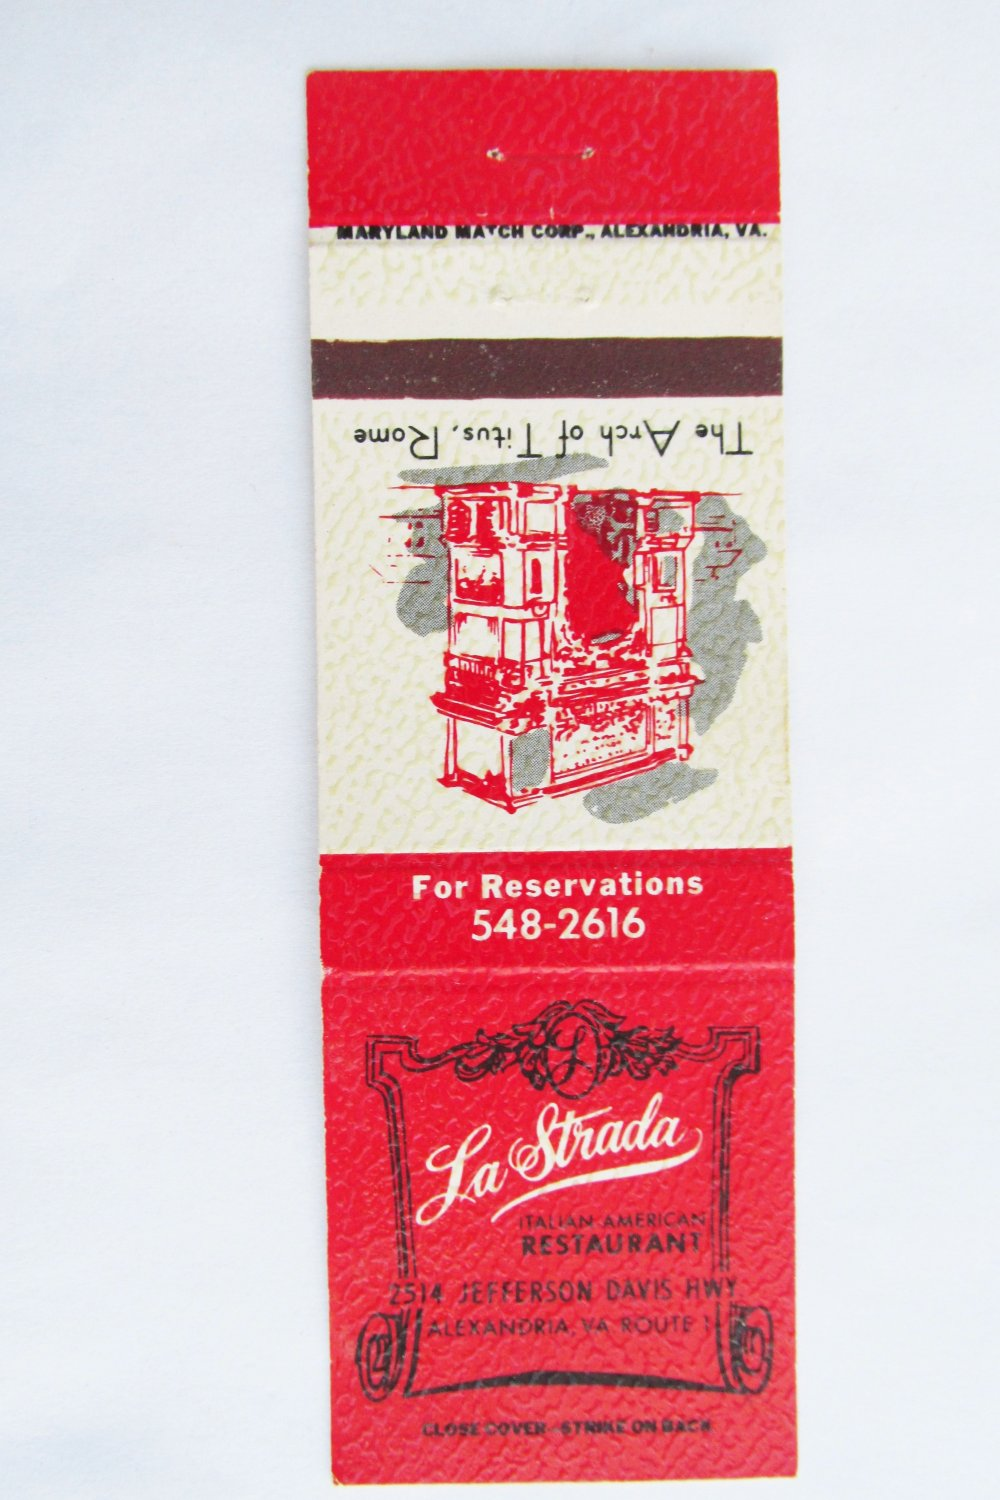 La Strada Restaurant Alexandria Virginia 20 Strike Matchbook Cover Arch 0f Titus